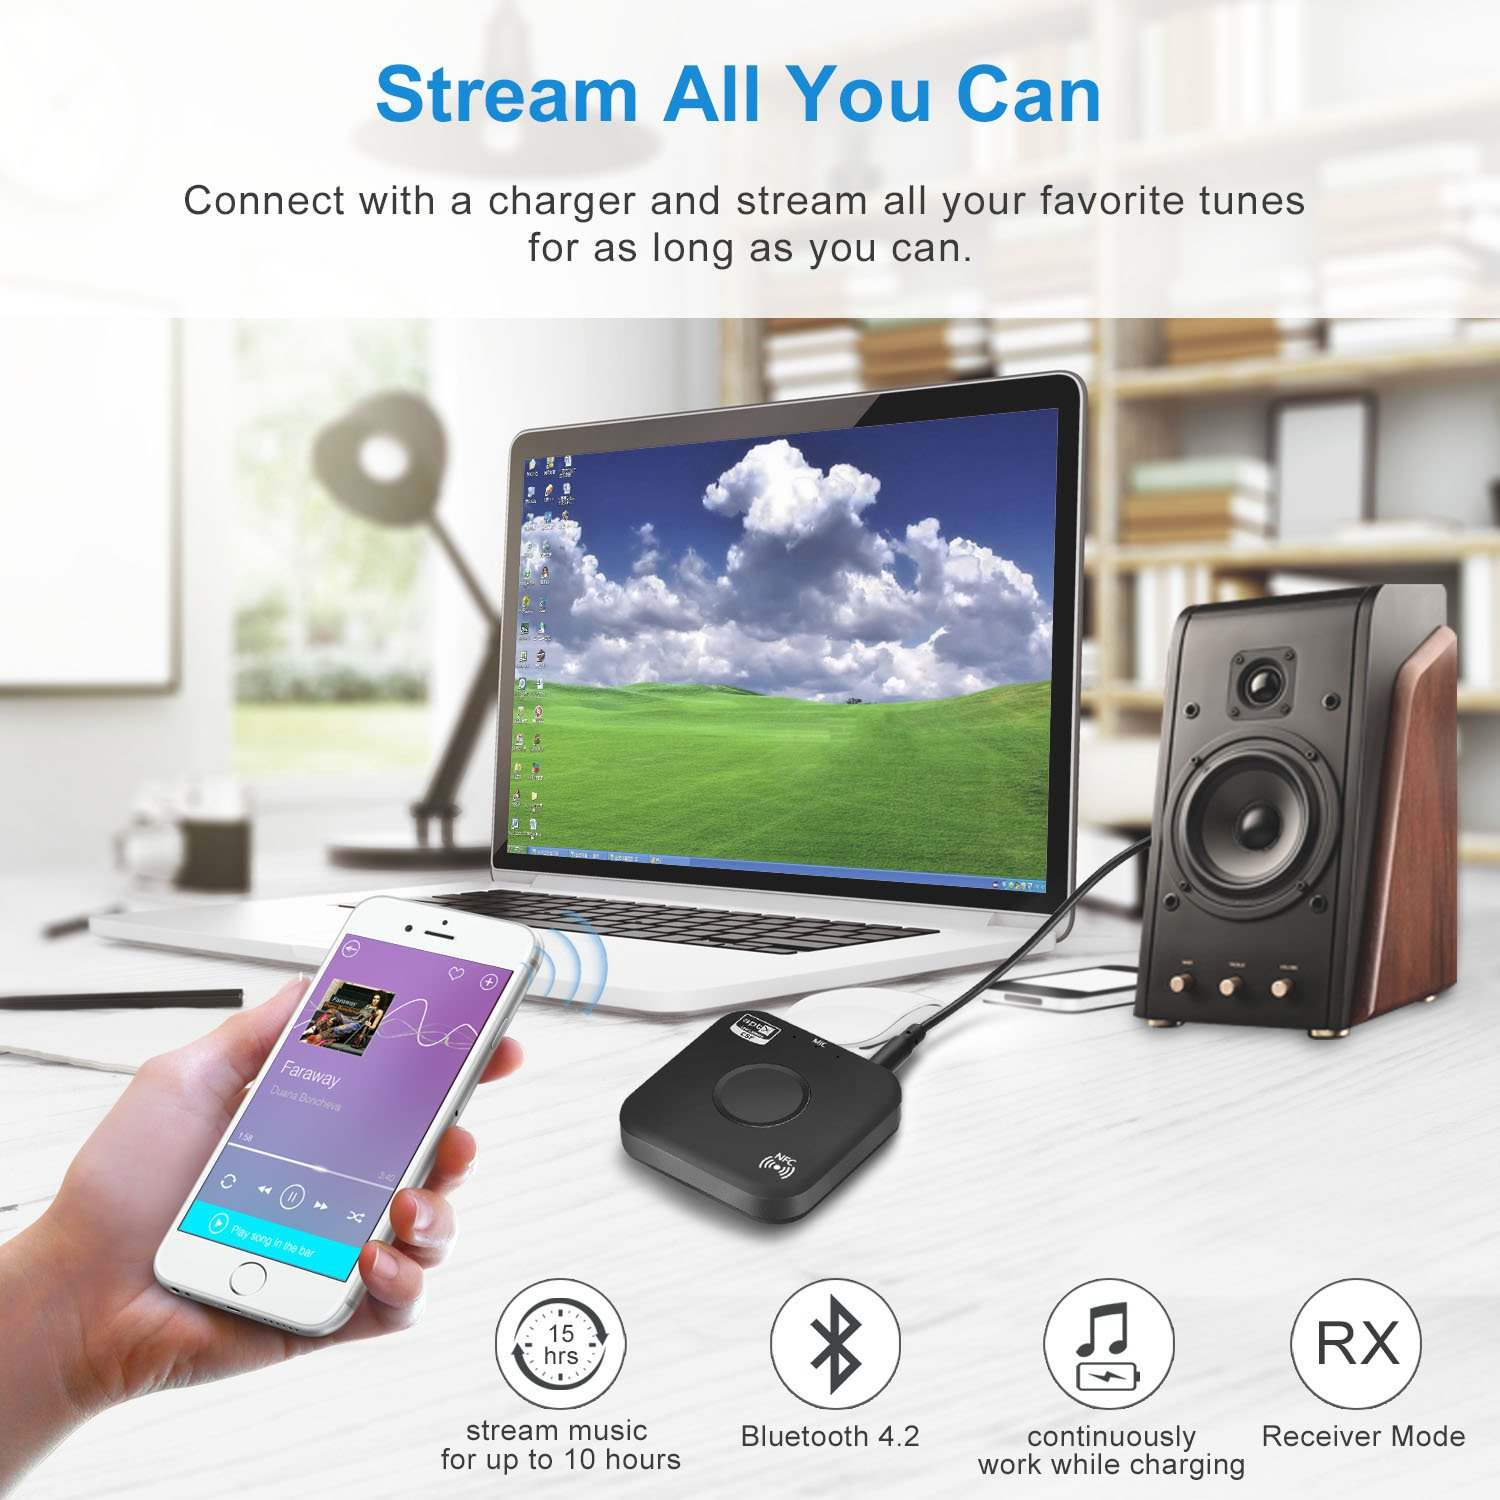 Bluetooth 4.2 Receiver Adapter/Car Kit,Csr aptX Low Latency,Kroaprao Wireless Bluetooth 3.5mm AUX and RCA HiFi Audio Receiver Devices 300mAh (10Hrs,NFC,Hands-Free Calling) for Home Stereo System by KROA PRAO (Image #3)